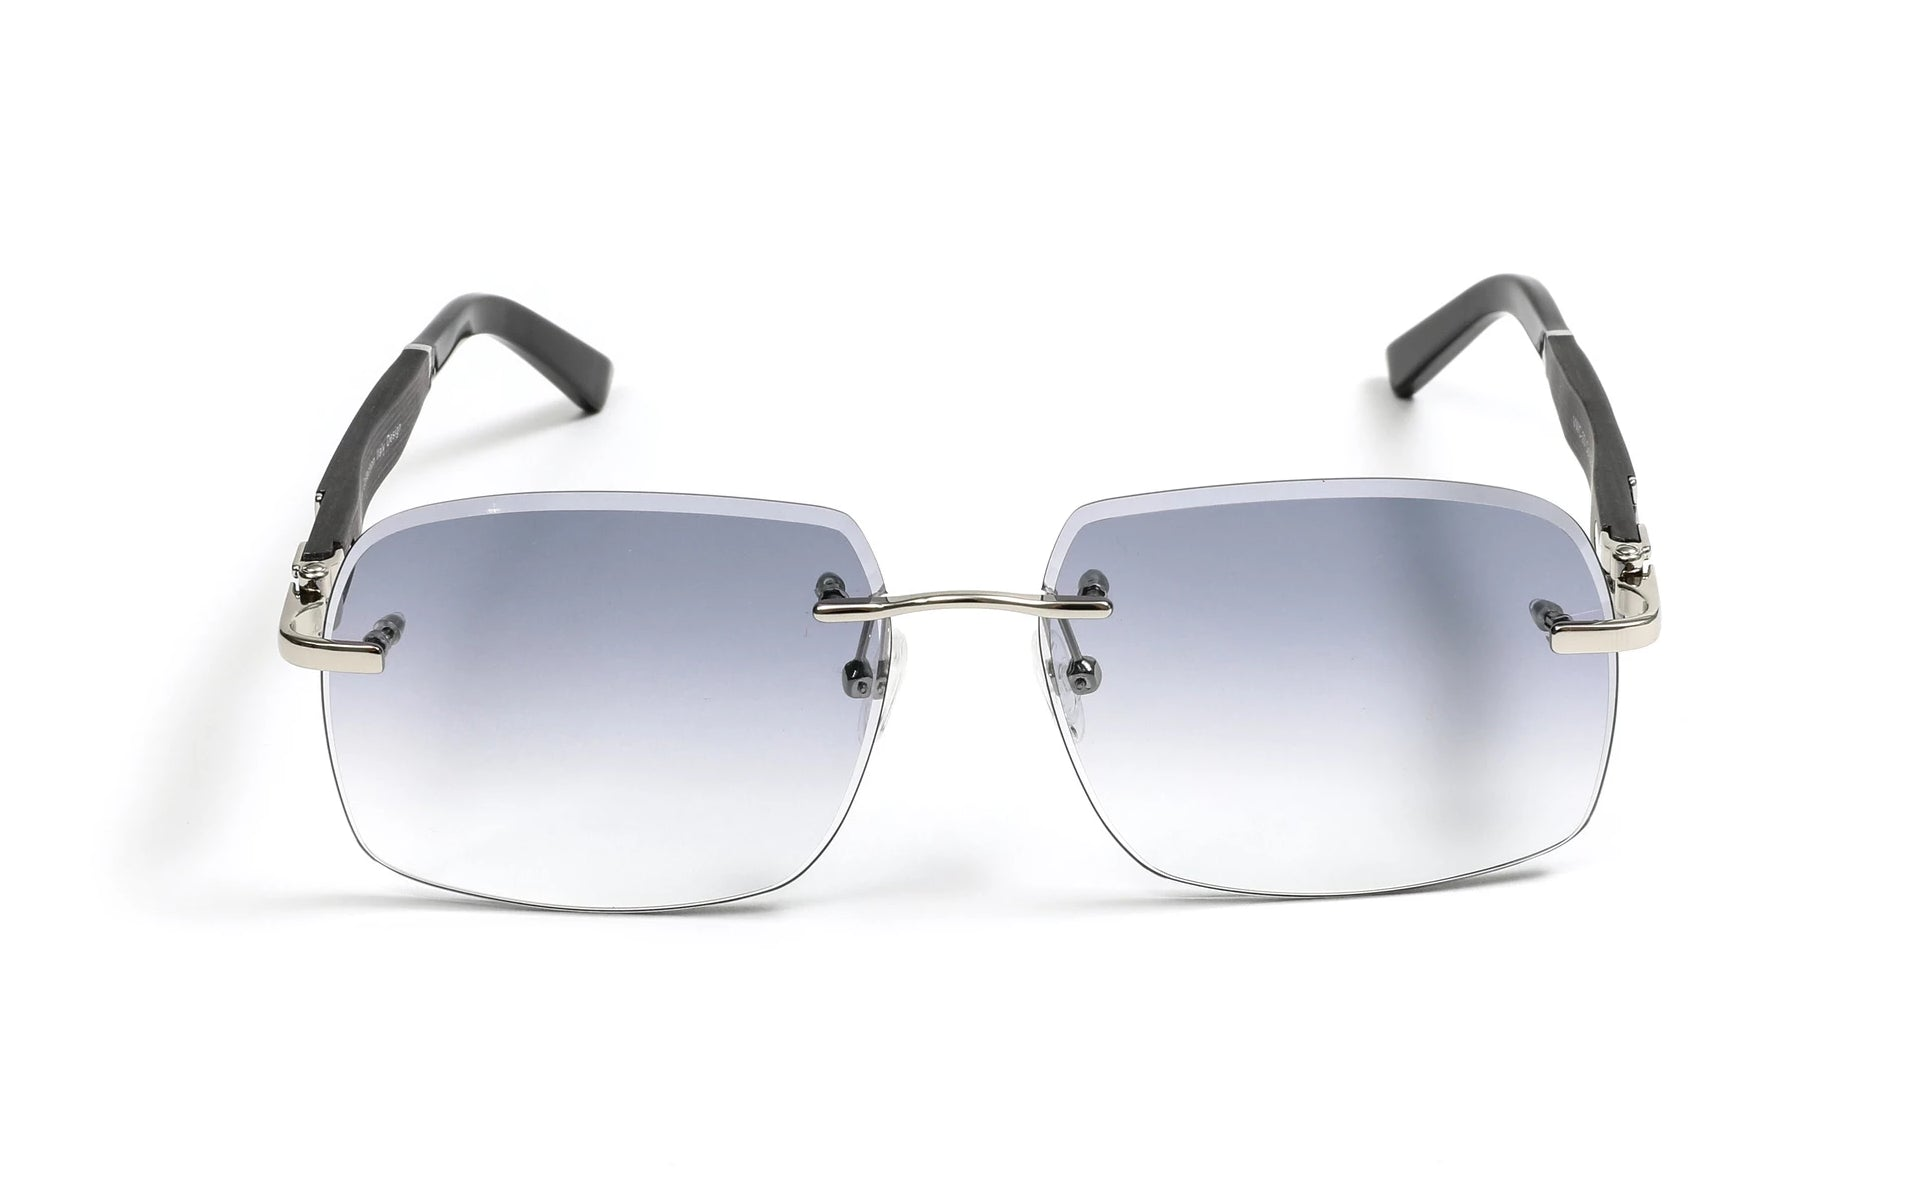 Silver, Black Wood, and Acetate Sunglasses, Gradient Grey Anti Reflective Bevel Lenses, Rimless Frame